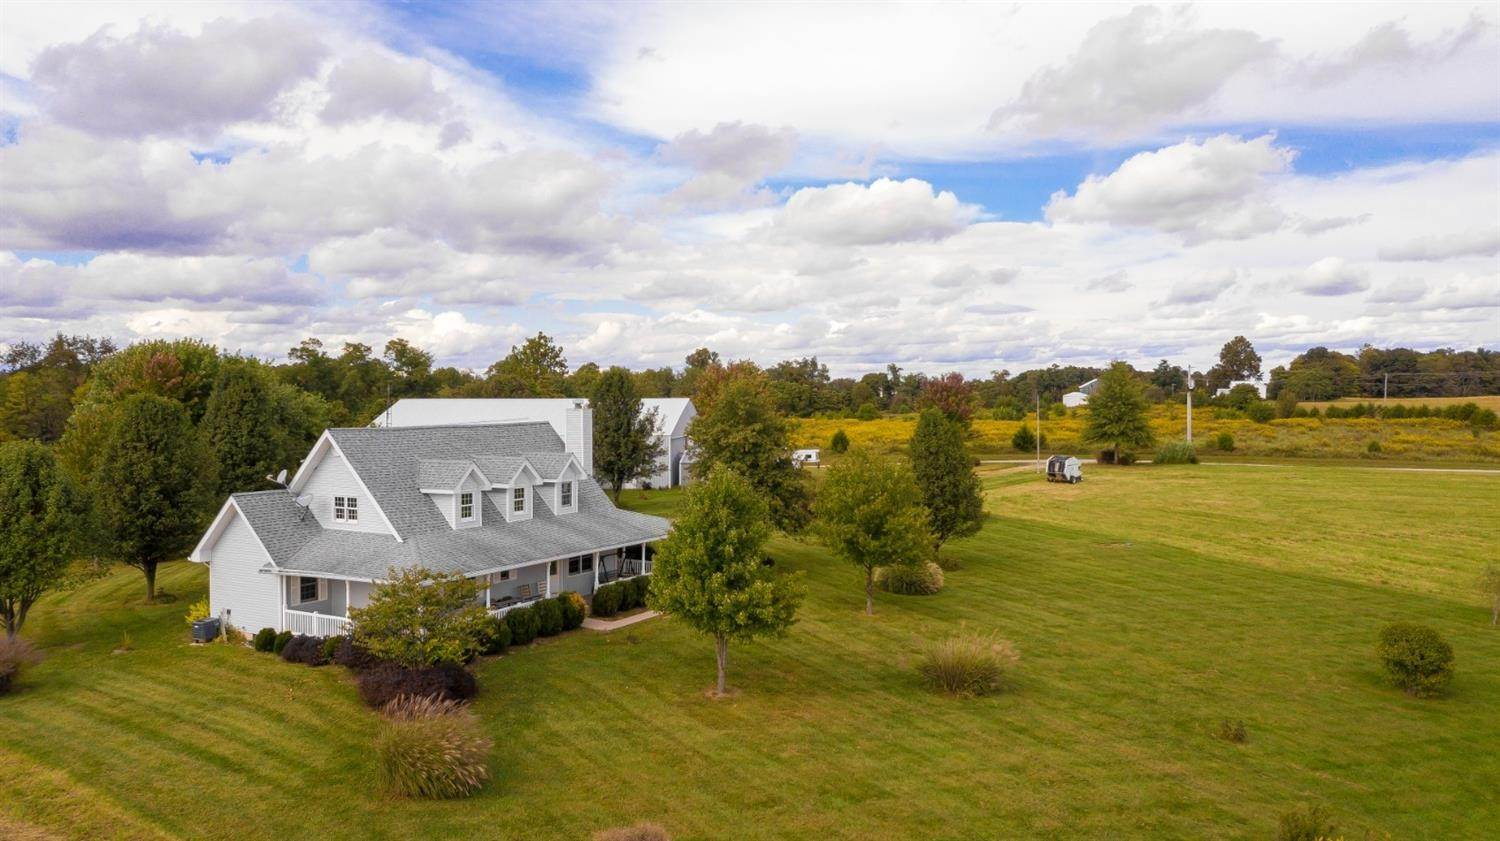 Farmhouse for Sale at 917 Highway 129 Vevay, Indiana 47043 United States